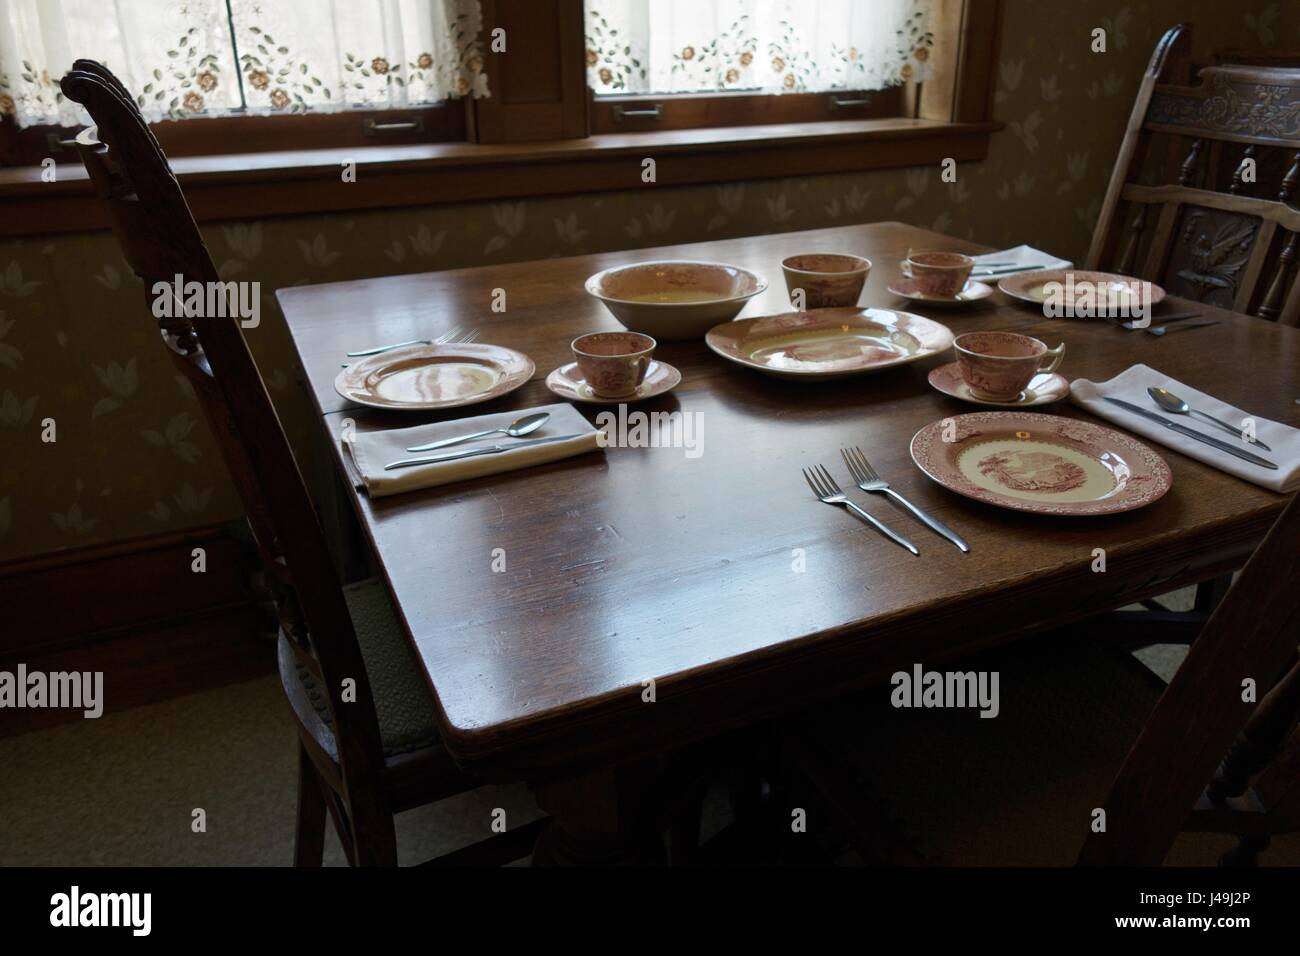 The servant's dining room at Glensheen Mansion in Duluth, Minnesota, USA. - Stock Image